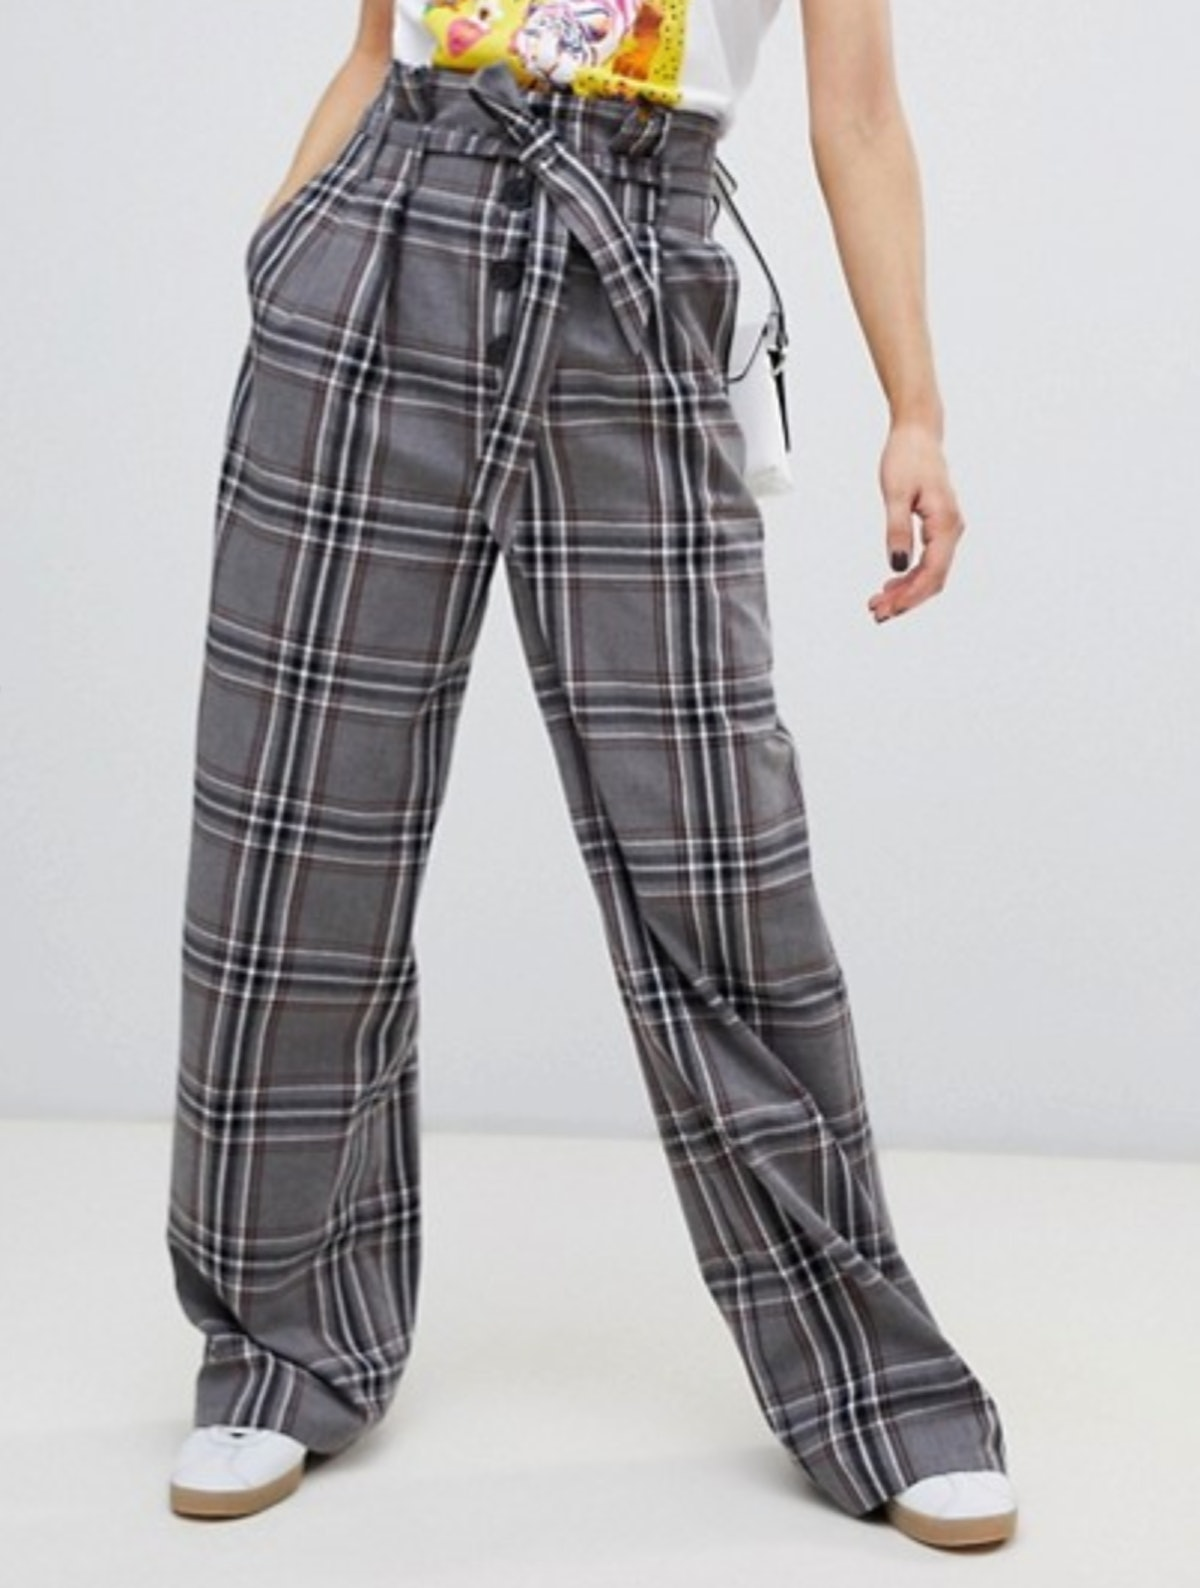 Stradivarius check wide pants with tie waist detail